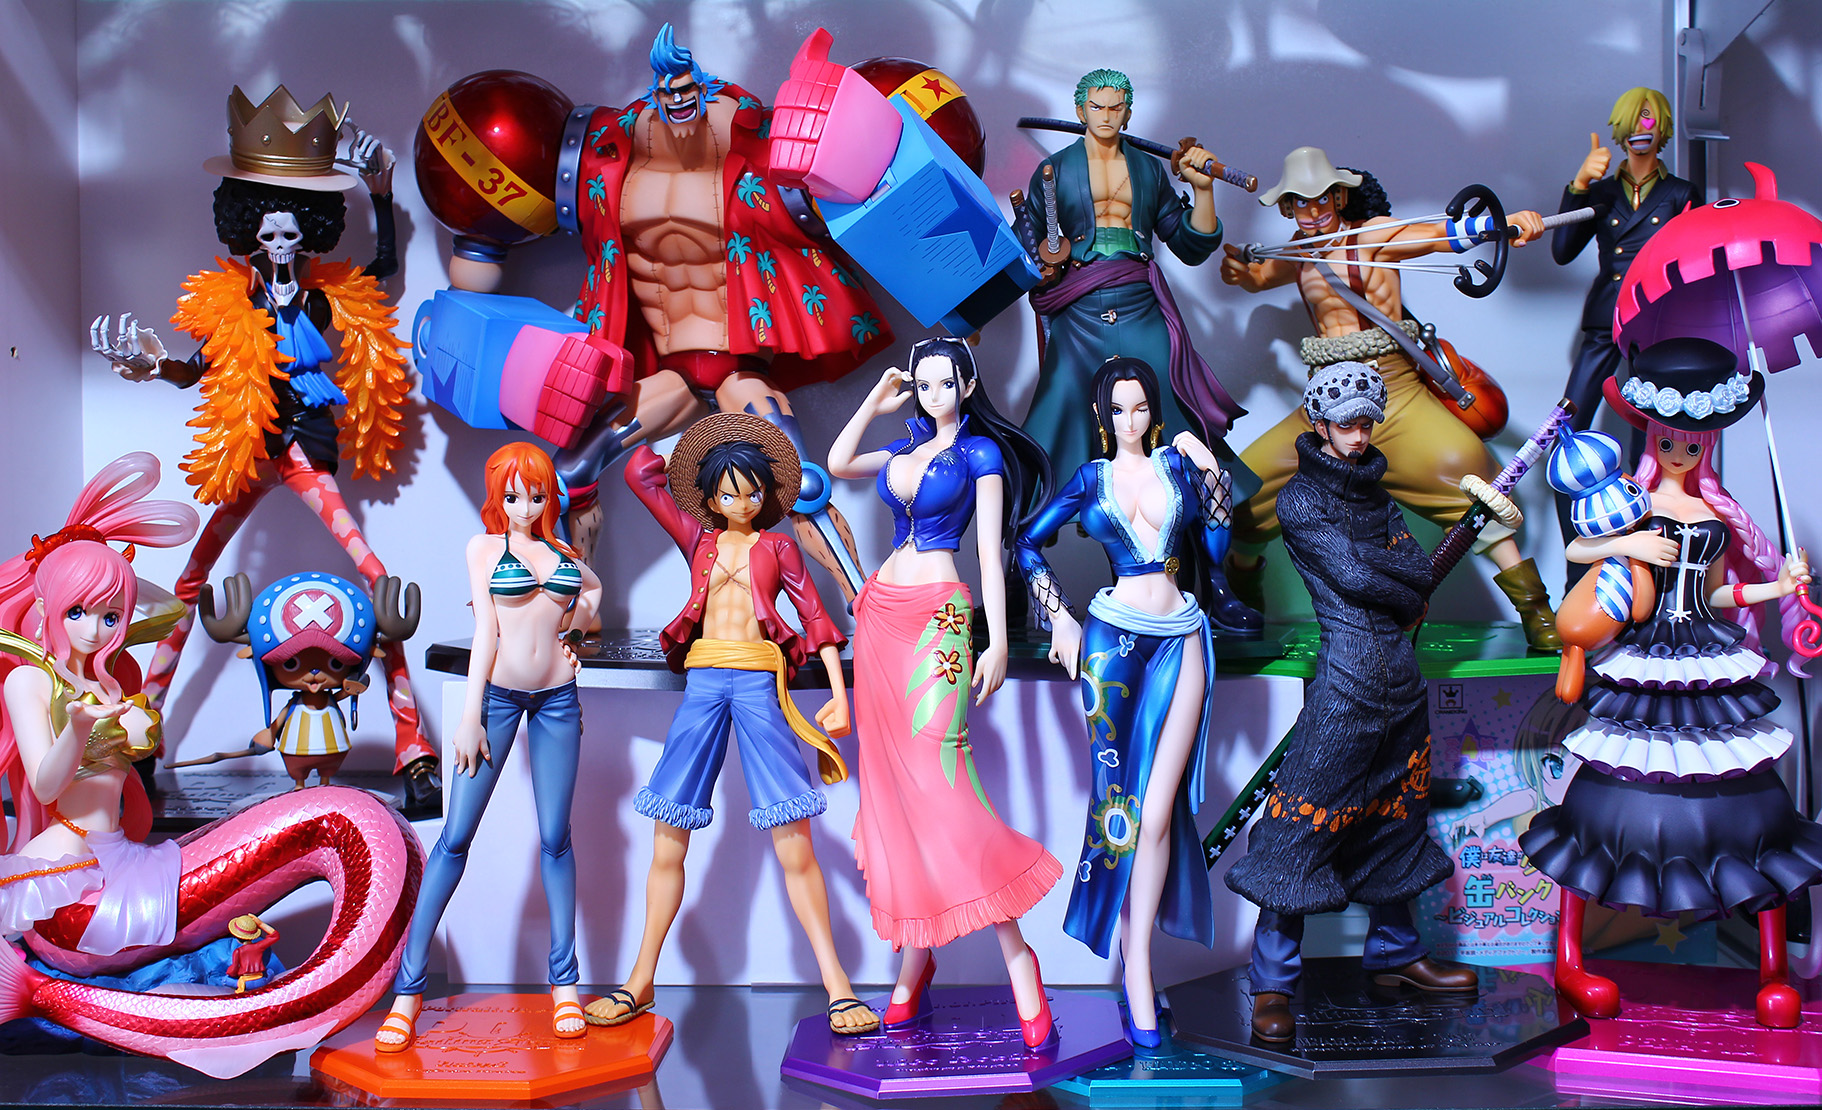 "megahouse one_piece nico_robin nami usopp sanji monkey_d._luffy franky excellent_model iwamoto_kunihito roronoa_zoro brook tony_tony_chopper boa_hancock shueisha trafalgar_law ajiken oda_eiichiro fukuda_takashi attm perona toei_animation portrait_of_pirates_""sailing_again"" shirahoshi ishiyama_yuuki portrait_of_pirates_ex portrait_of_pirates_""sa-maximum"""